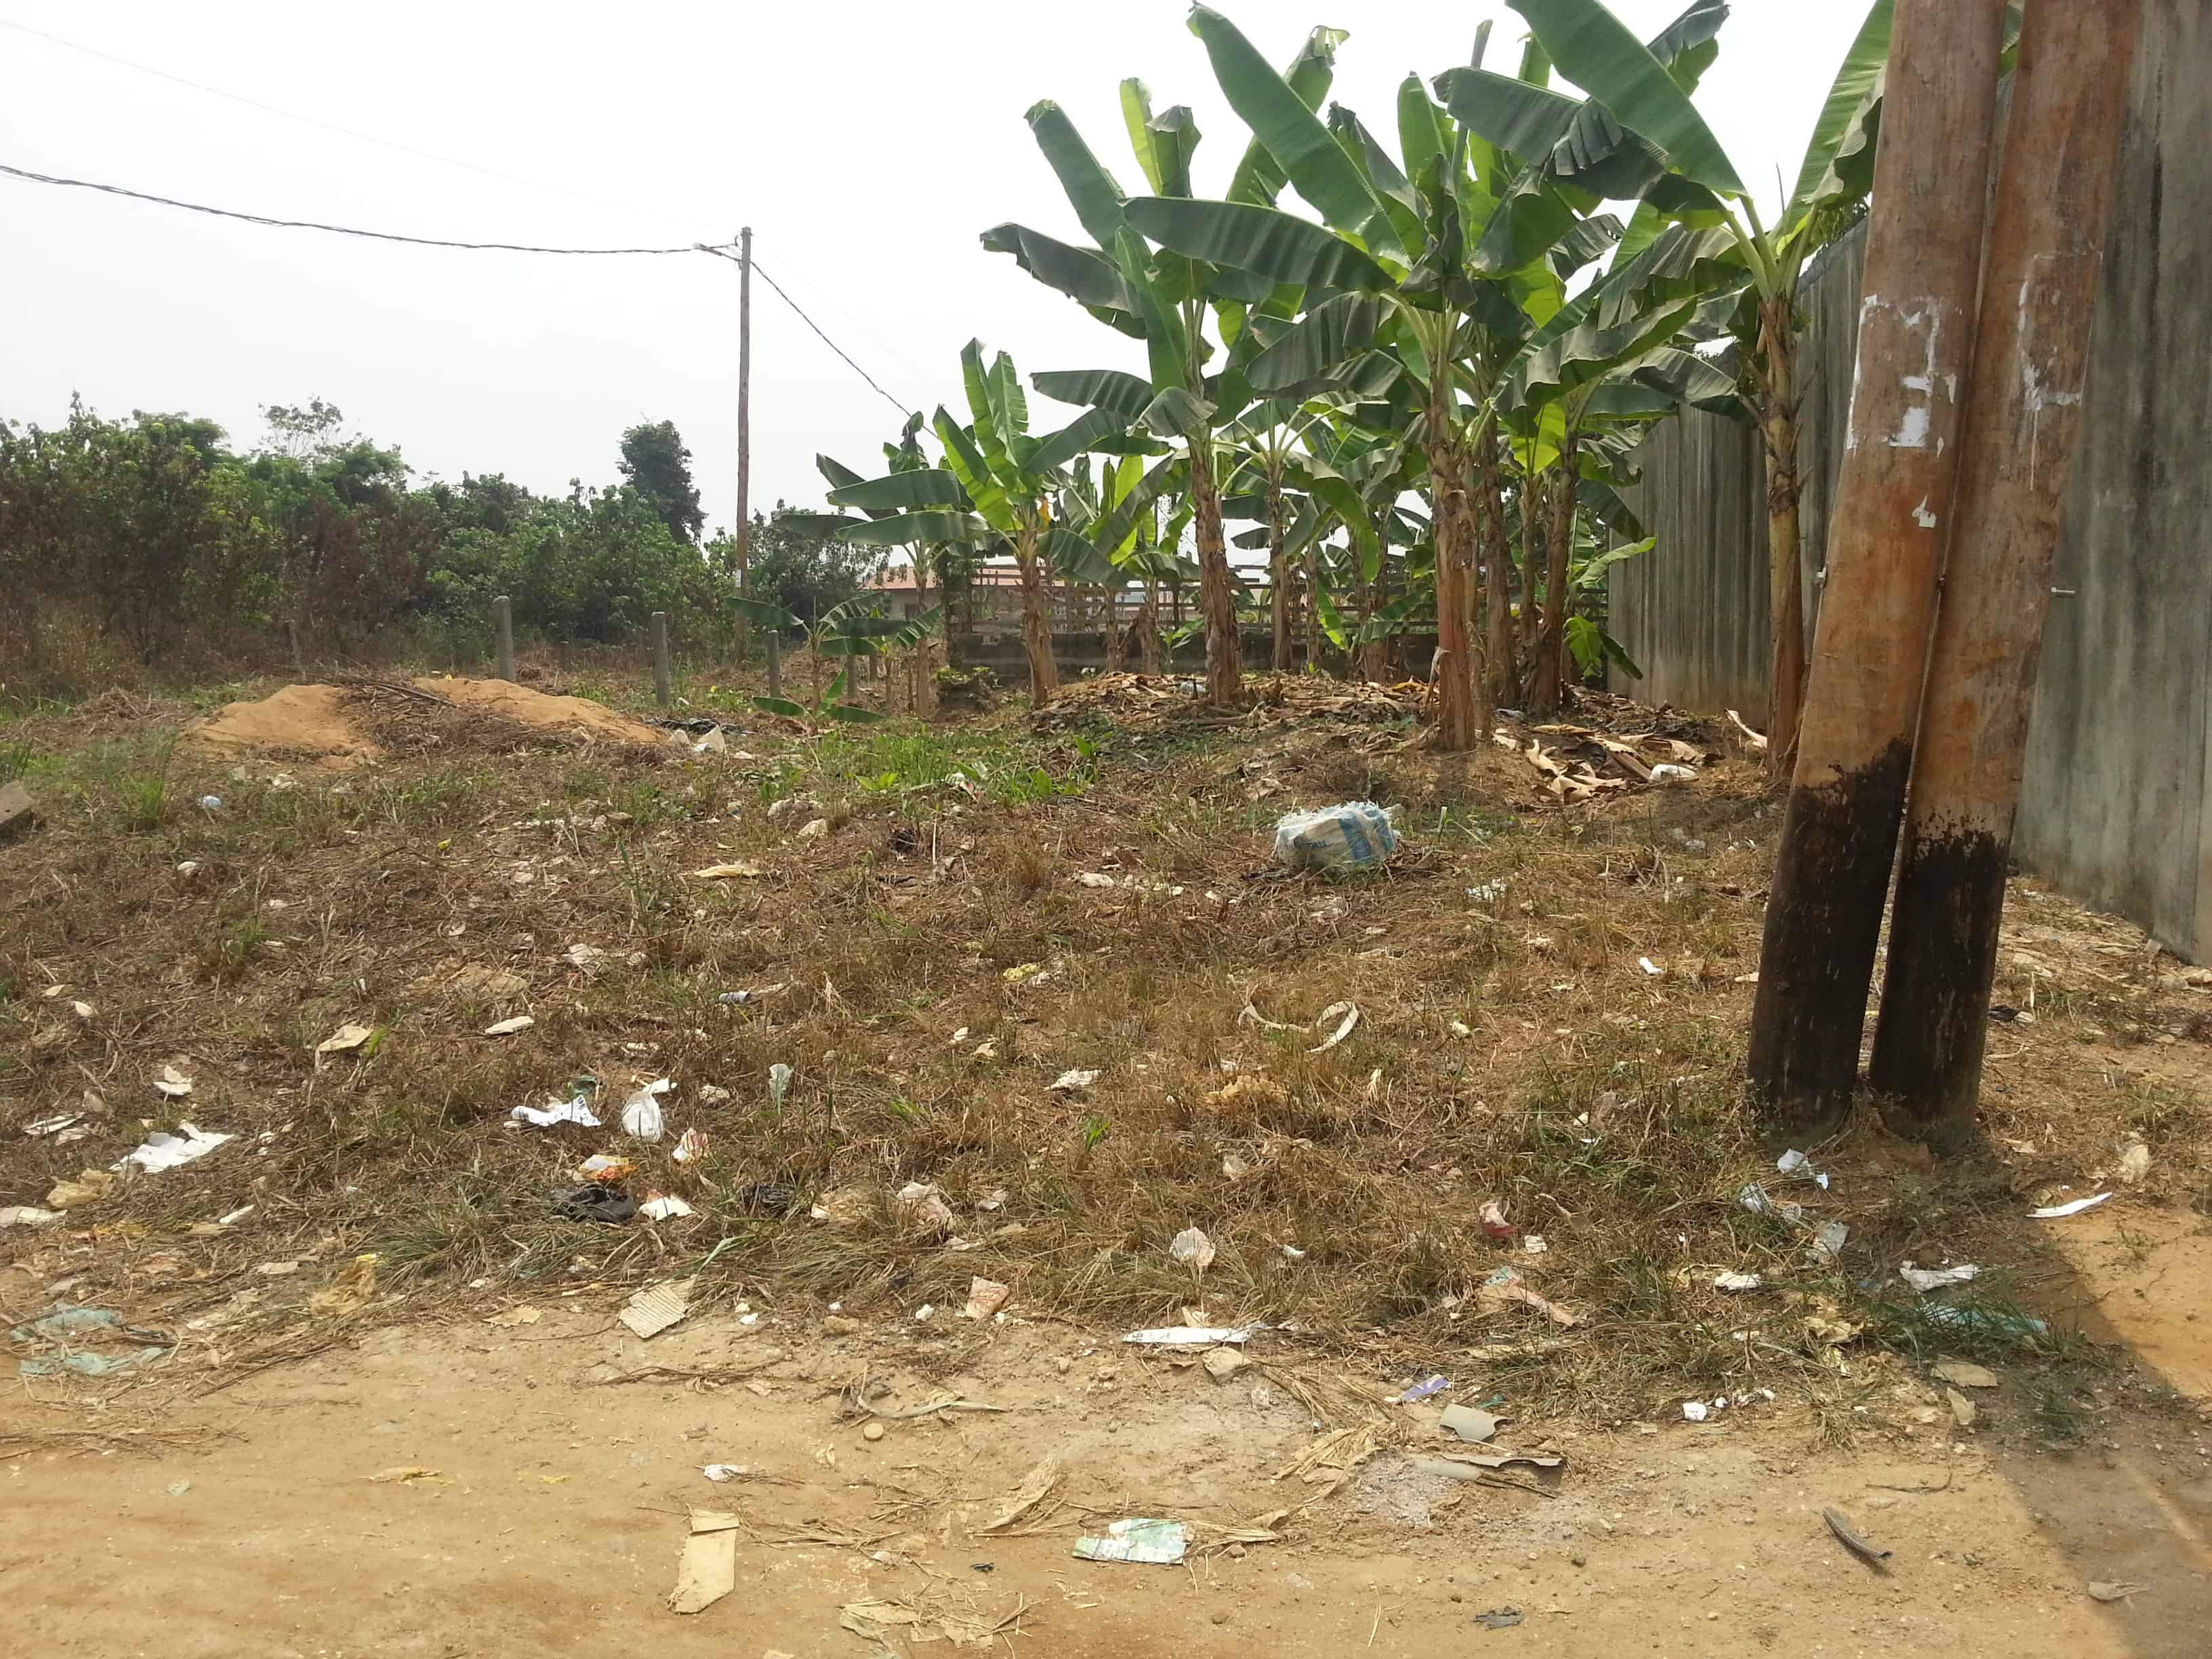 Land for sale at Douala, Yassa, Maetur - 250 m2 - 20 000 000 FCFA